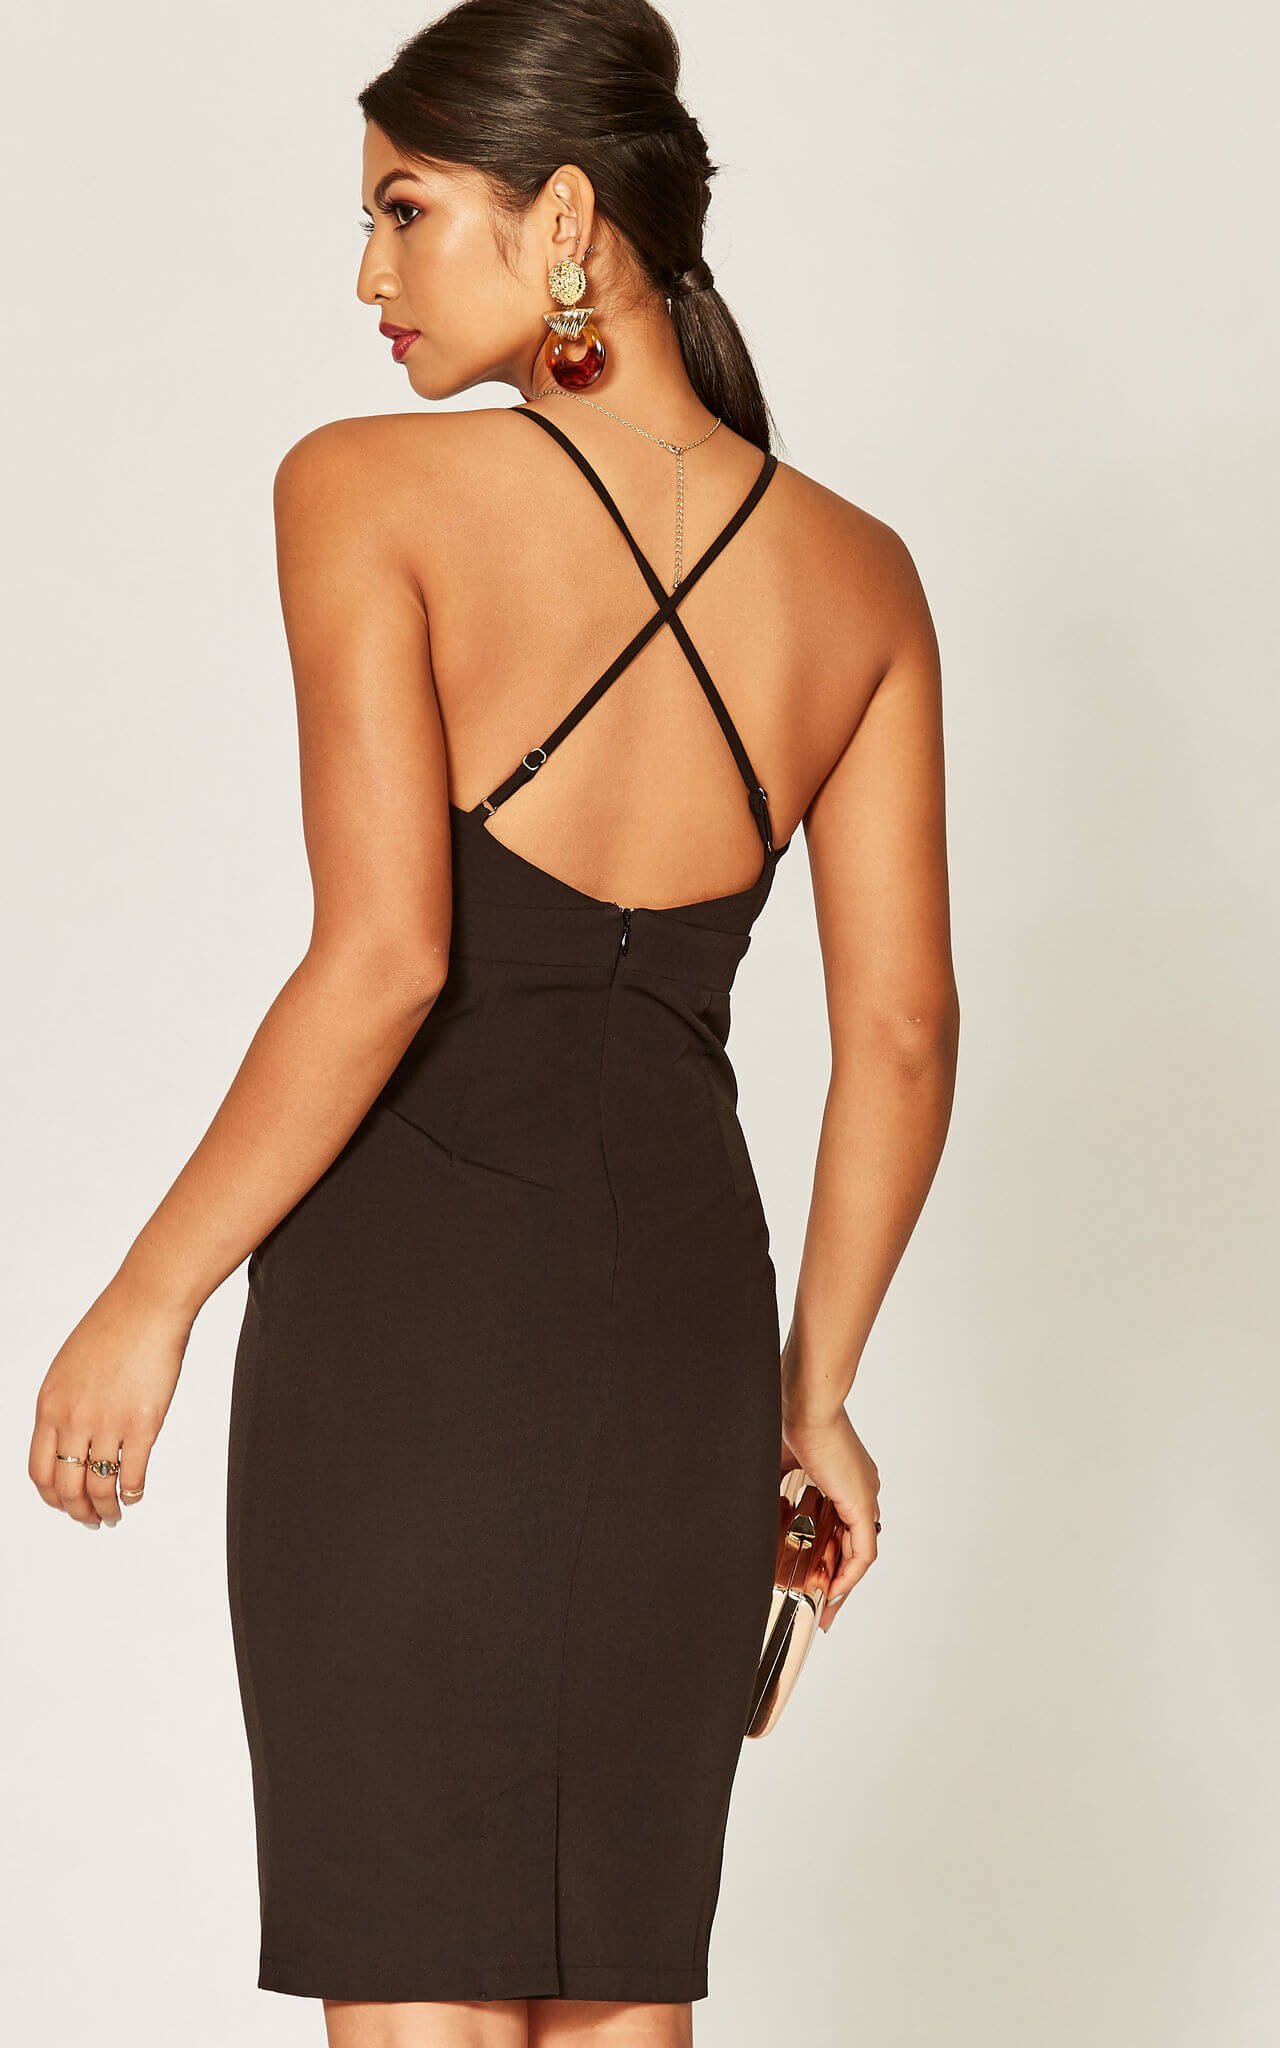 Model has her back to the camera in a black dress with cross back straps